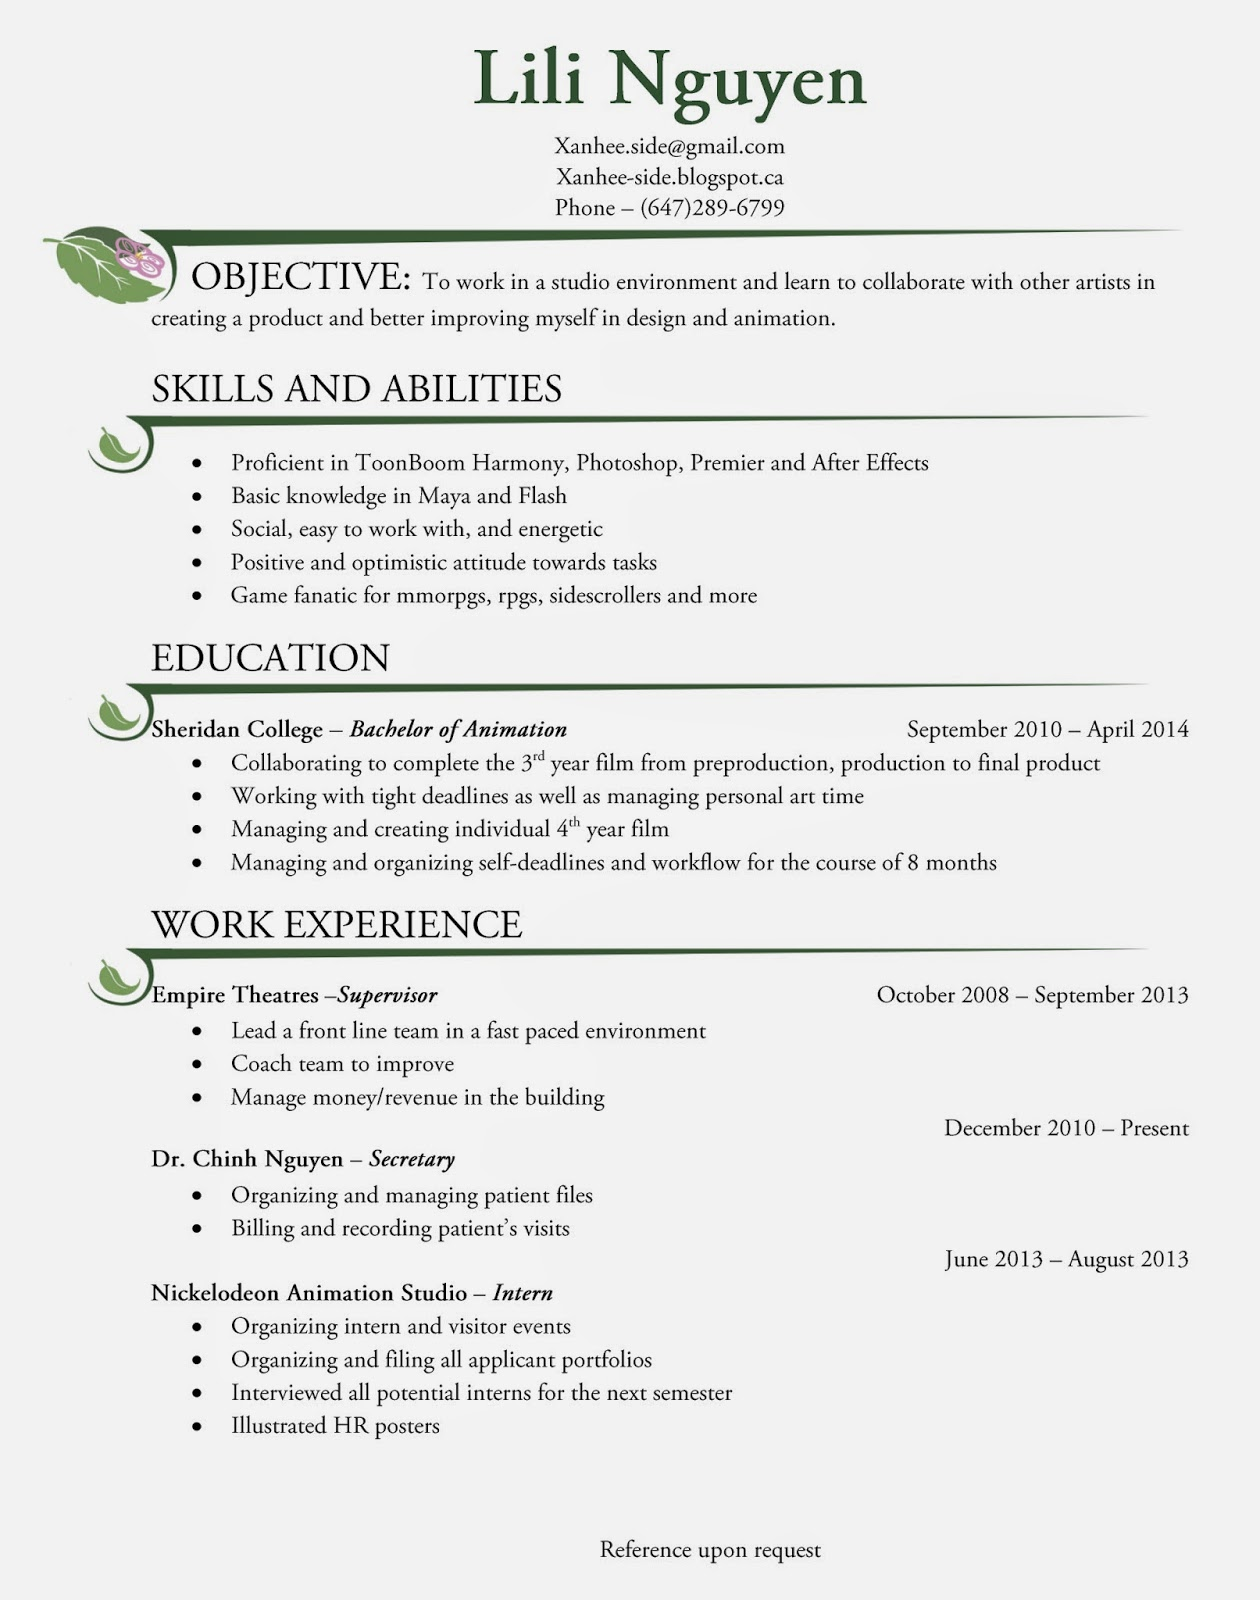 resume demo copy resume format resume format microsoft folder icon downloads exercise science resume sample demo - Copy Of A Resume Format